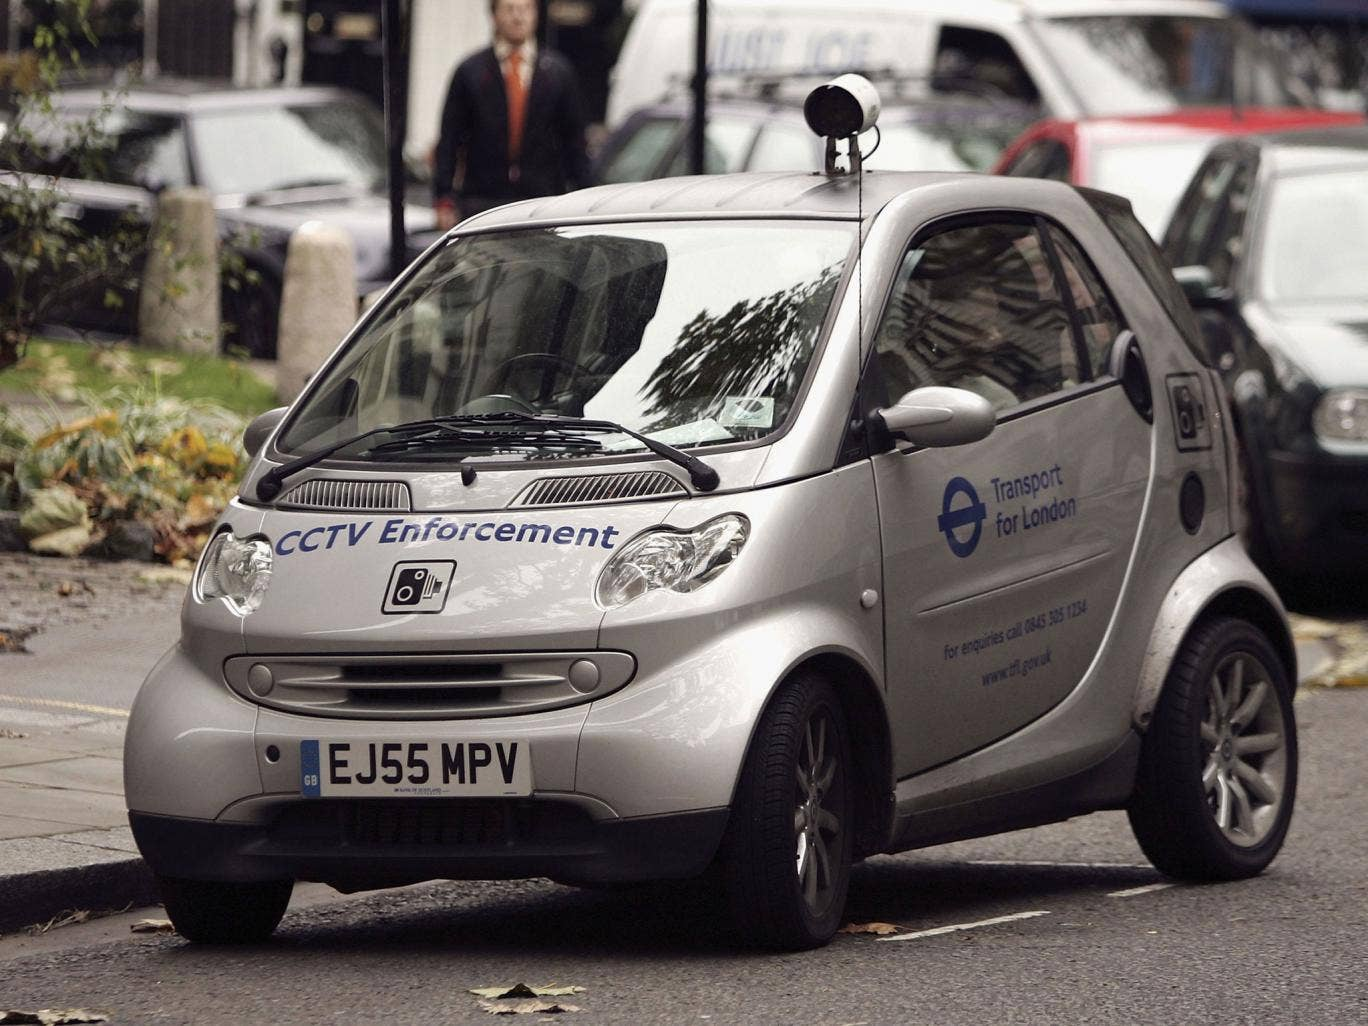 At least 58 local authorities are using CCTV camera cars – an 87 percent increase since 2009